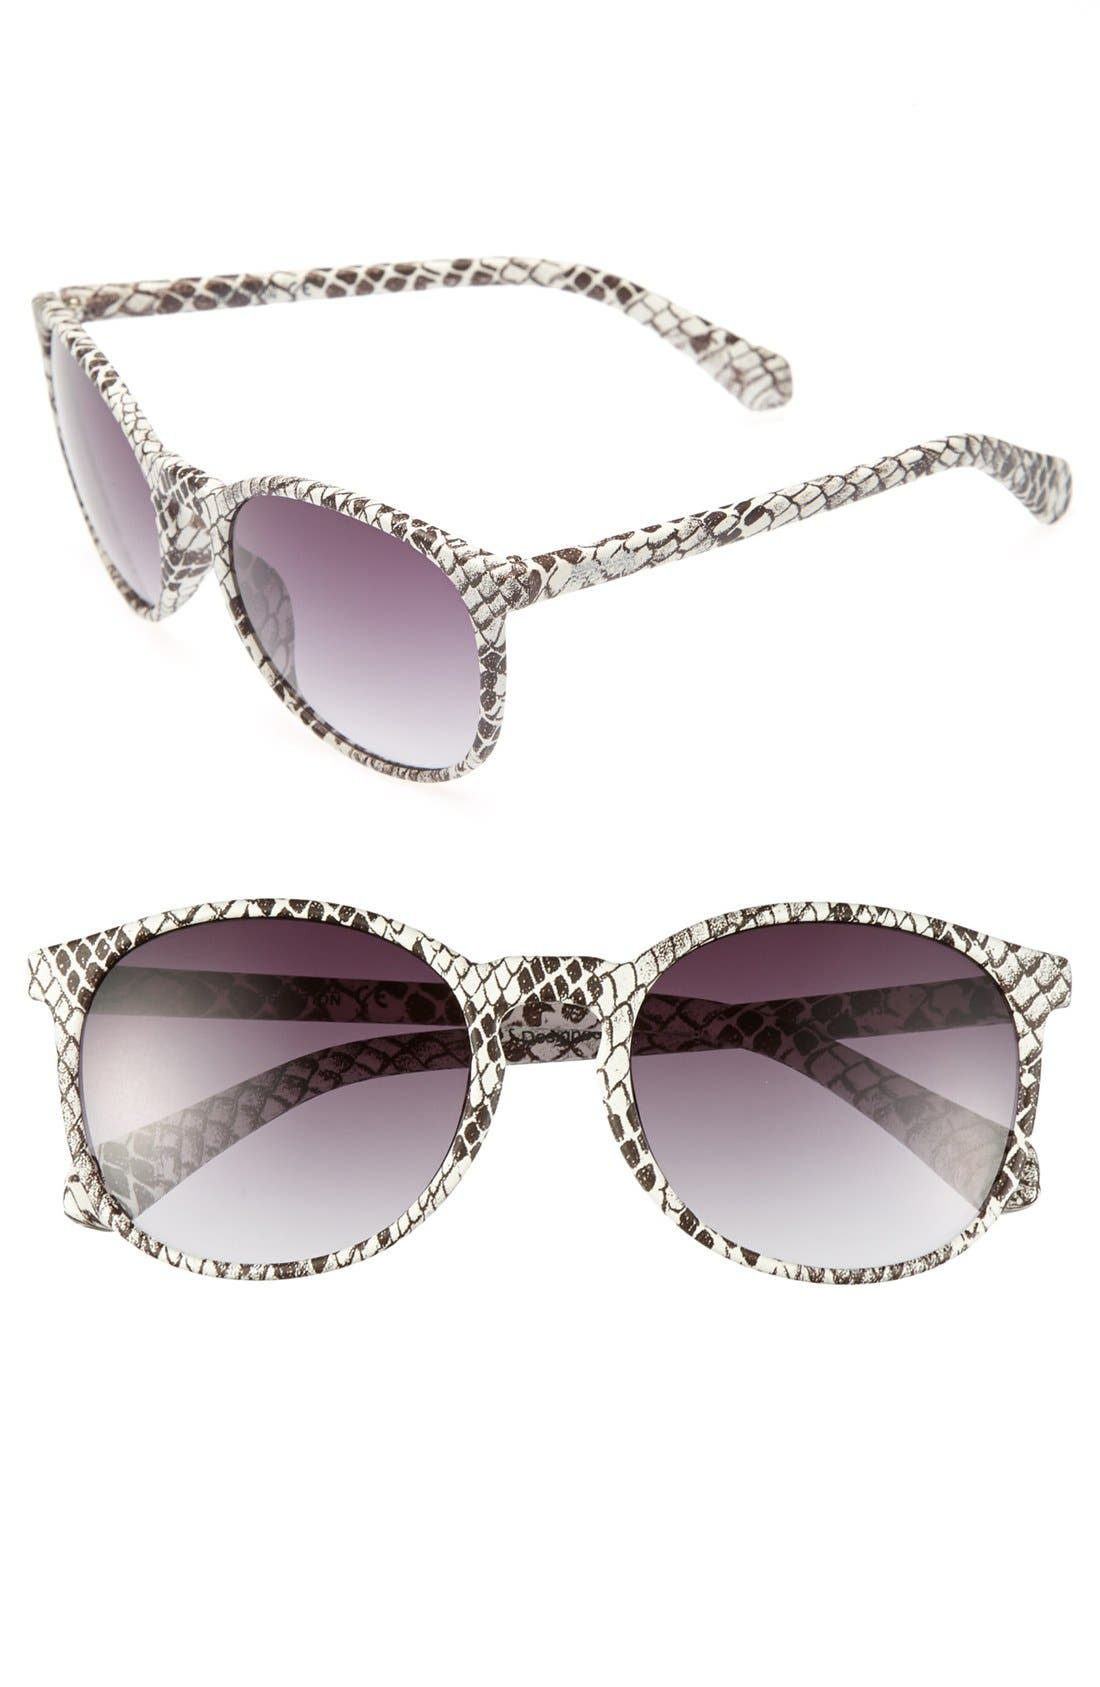 Main Image - Kenneth Cole Reaction 54mm Sunglasses